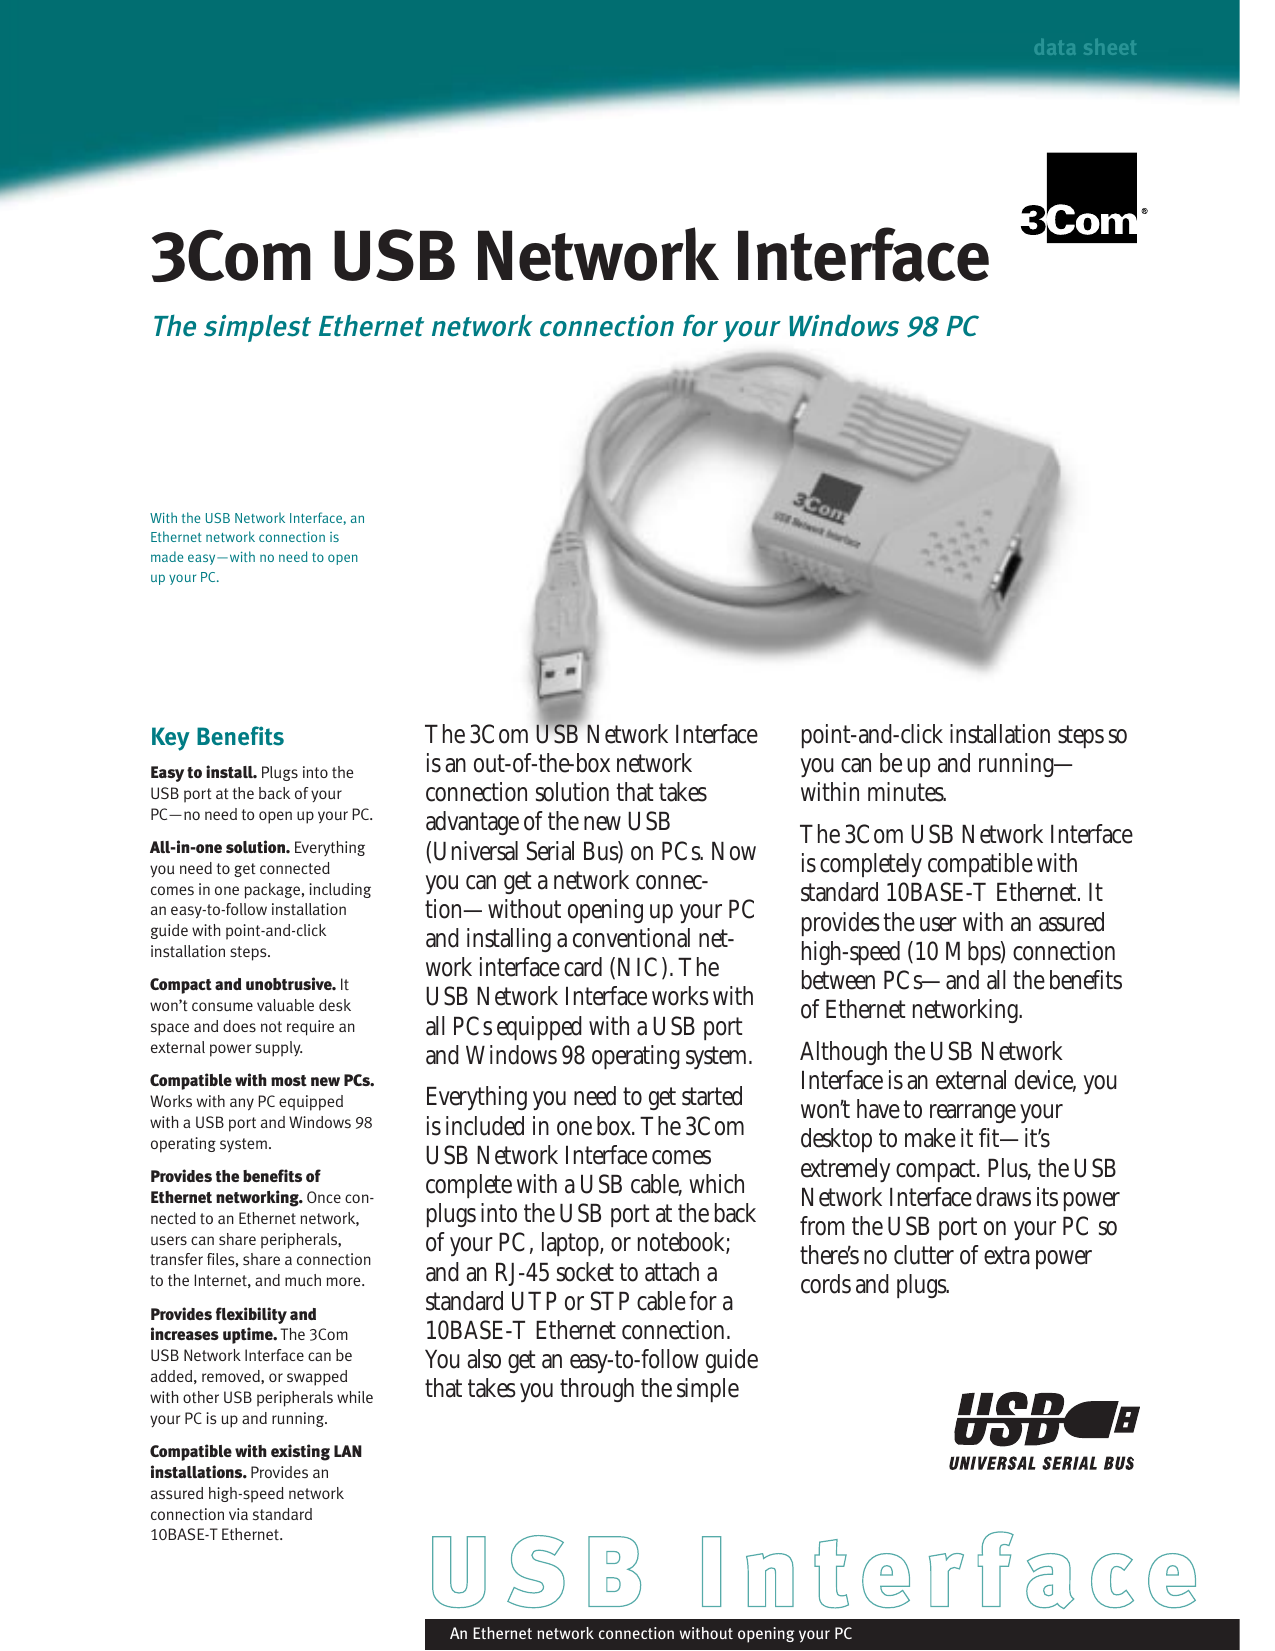 3COM USB NETWORK INTERFACE DRIVER FOR WINDOWS DOWNLOAD